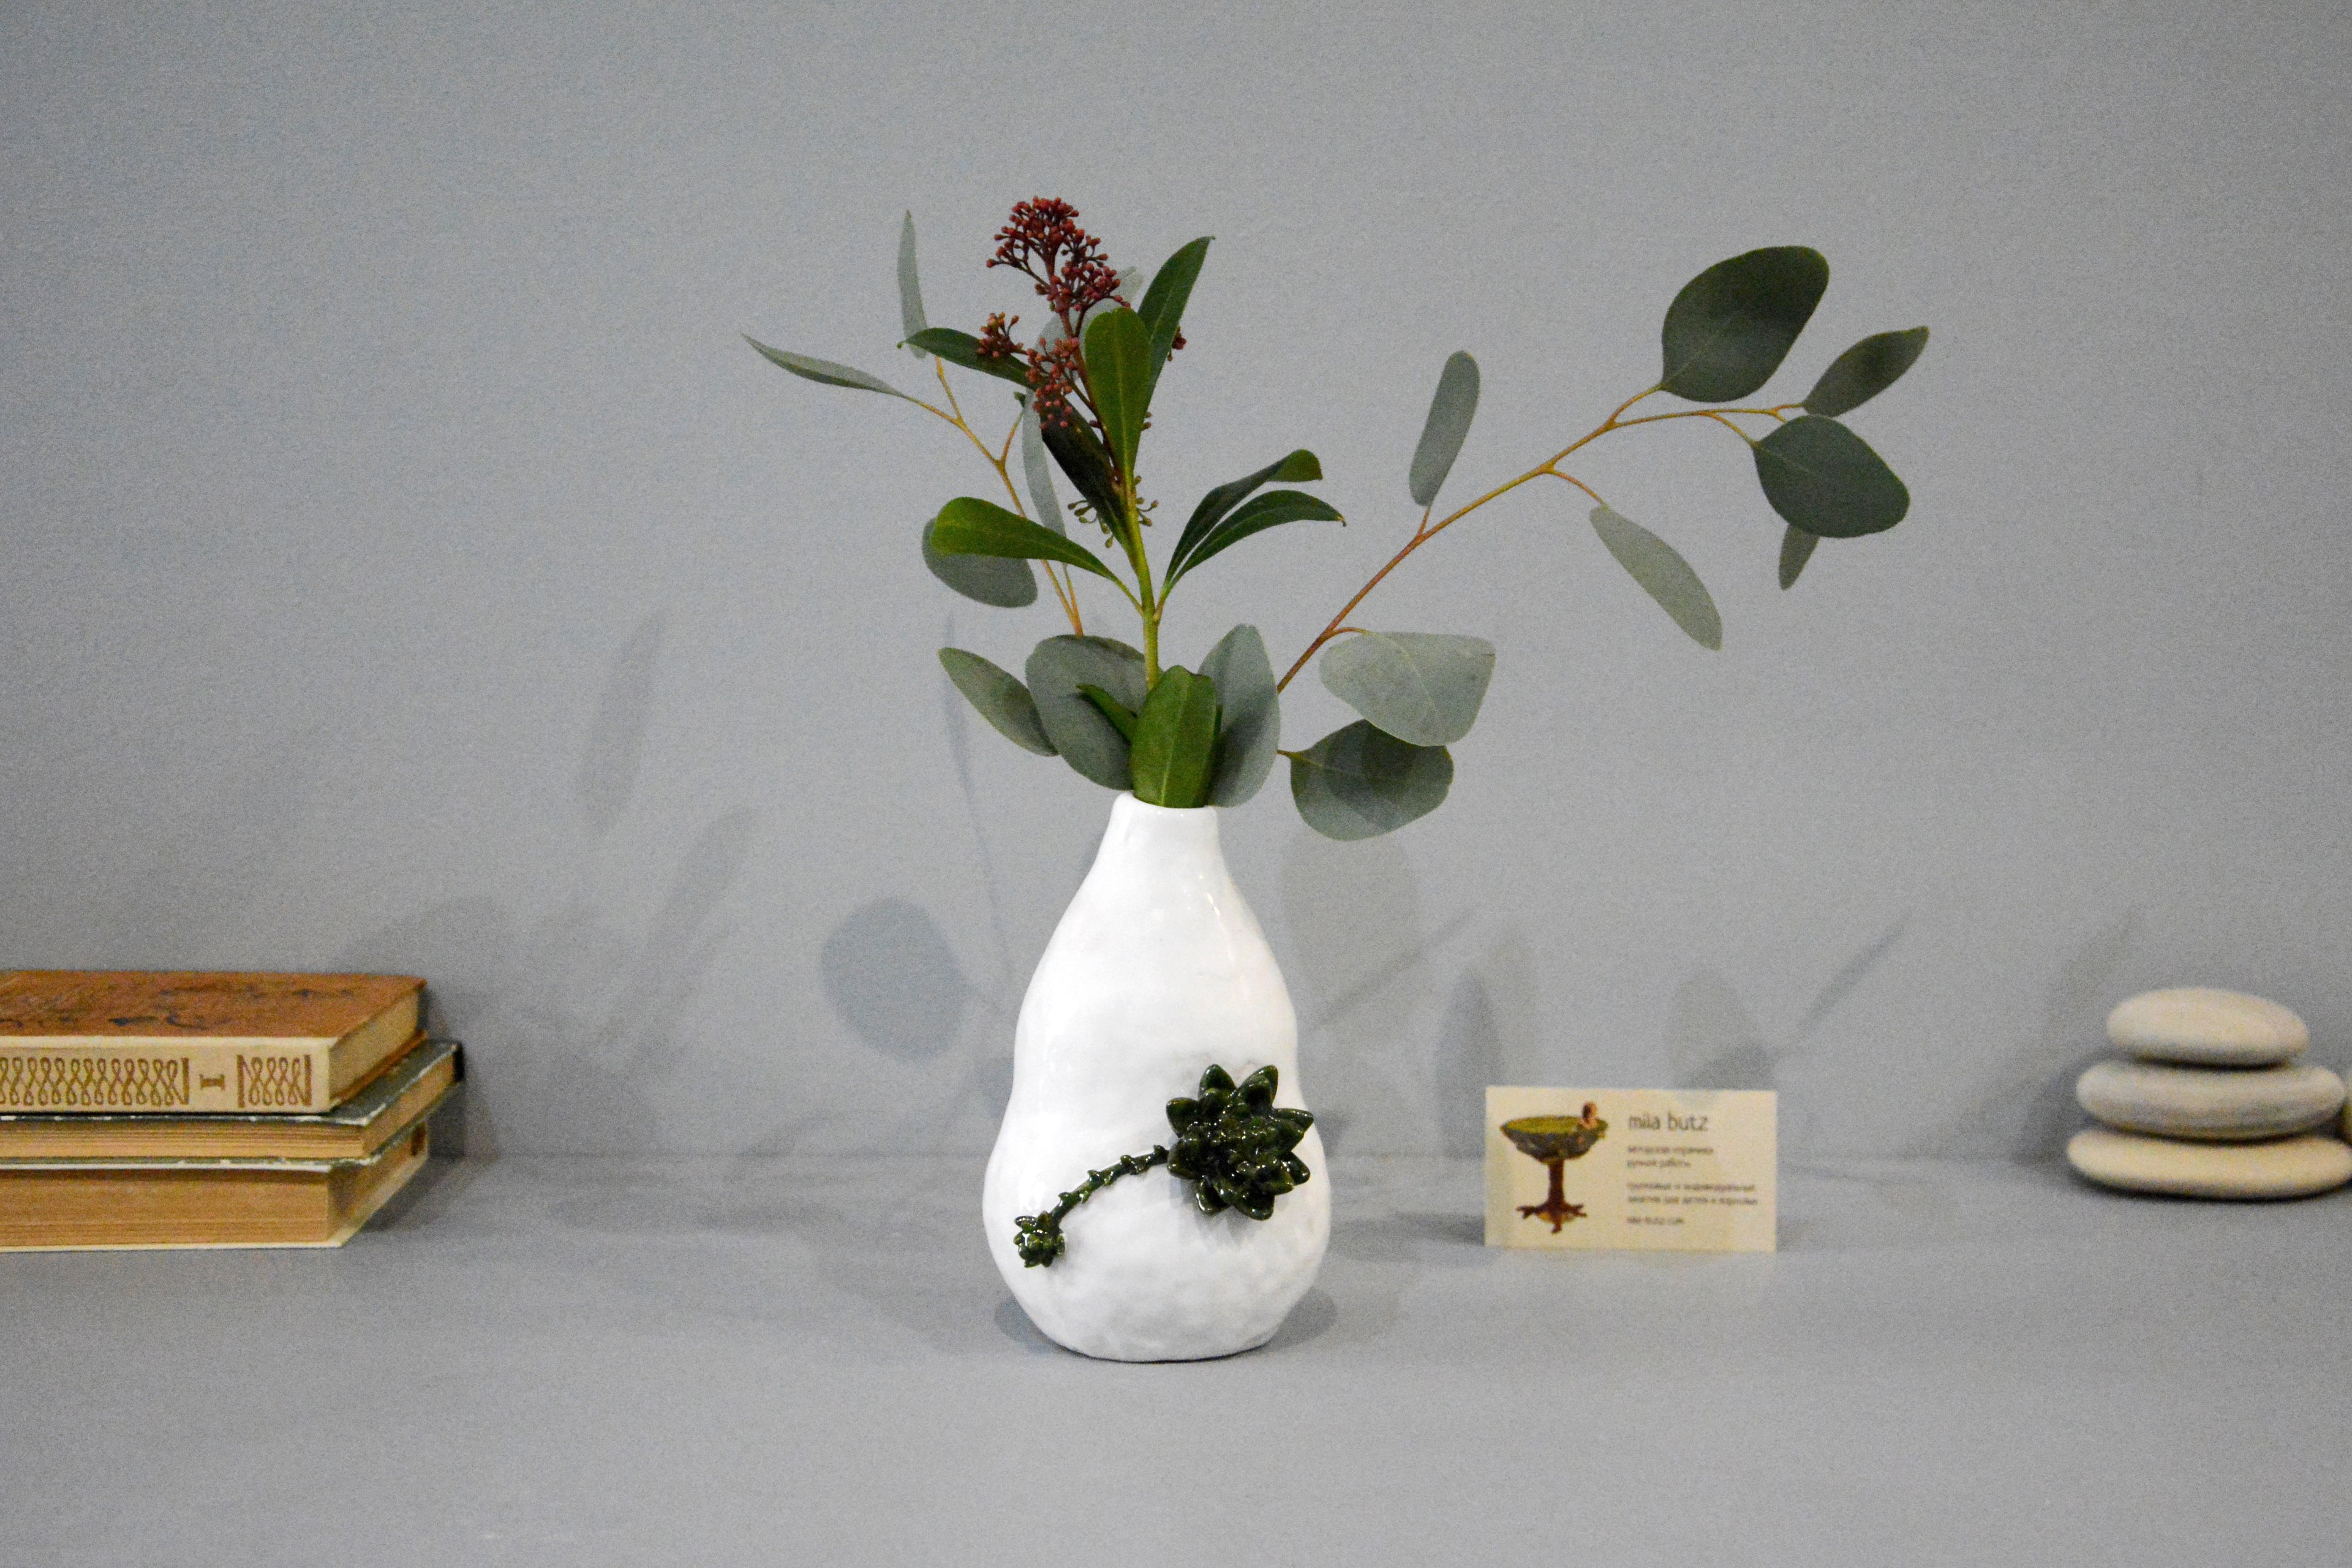 Decorative vase «Echeveria», height - 16 cm, color - white. Photo 1400.